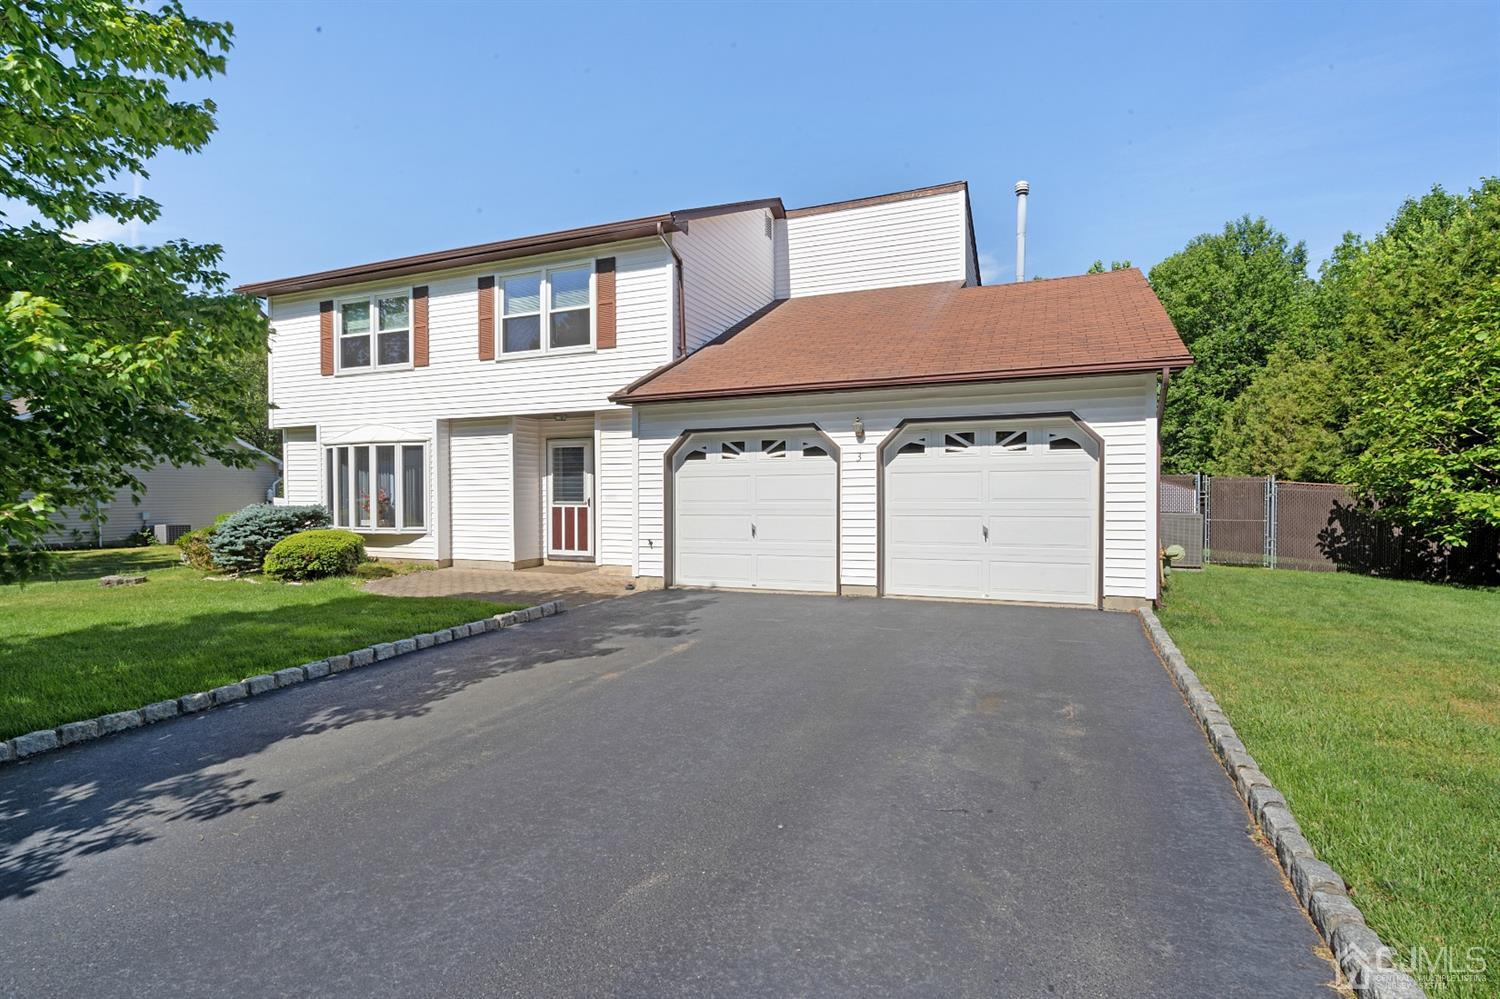 Property for sale at 3 Millburn Court, Old Bridge,  New Jersey 08857